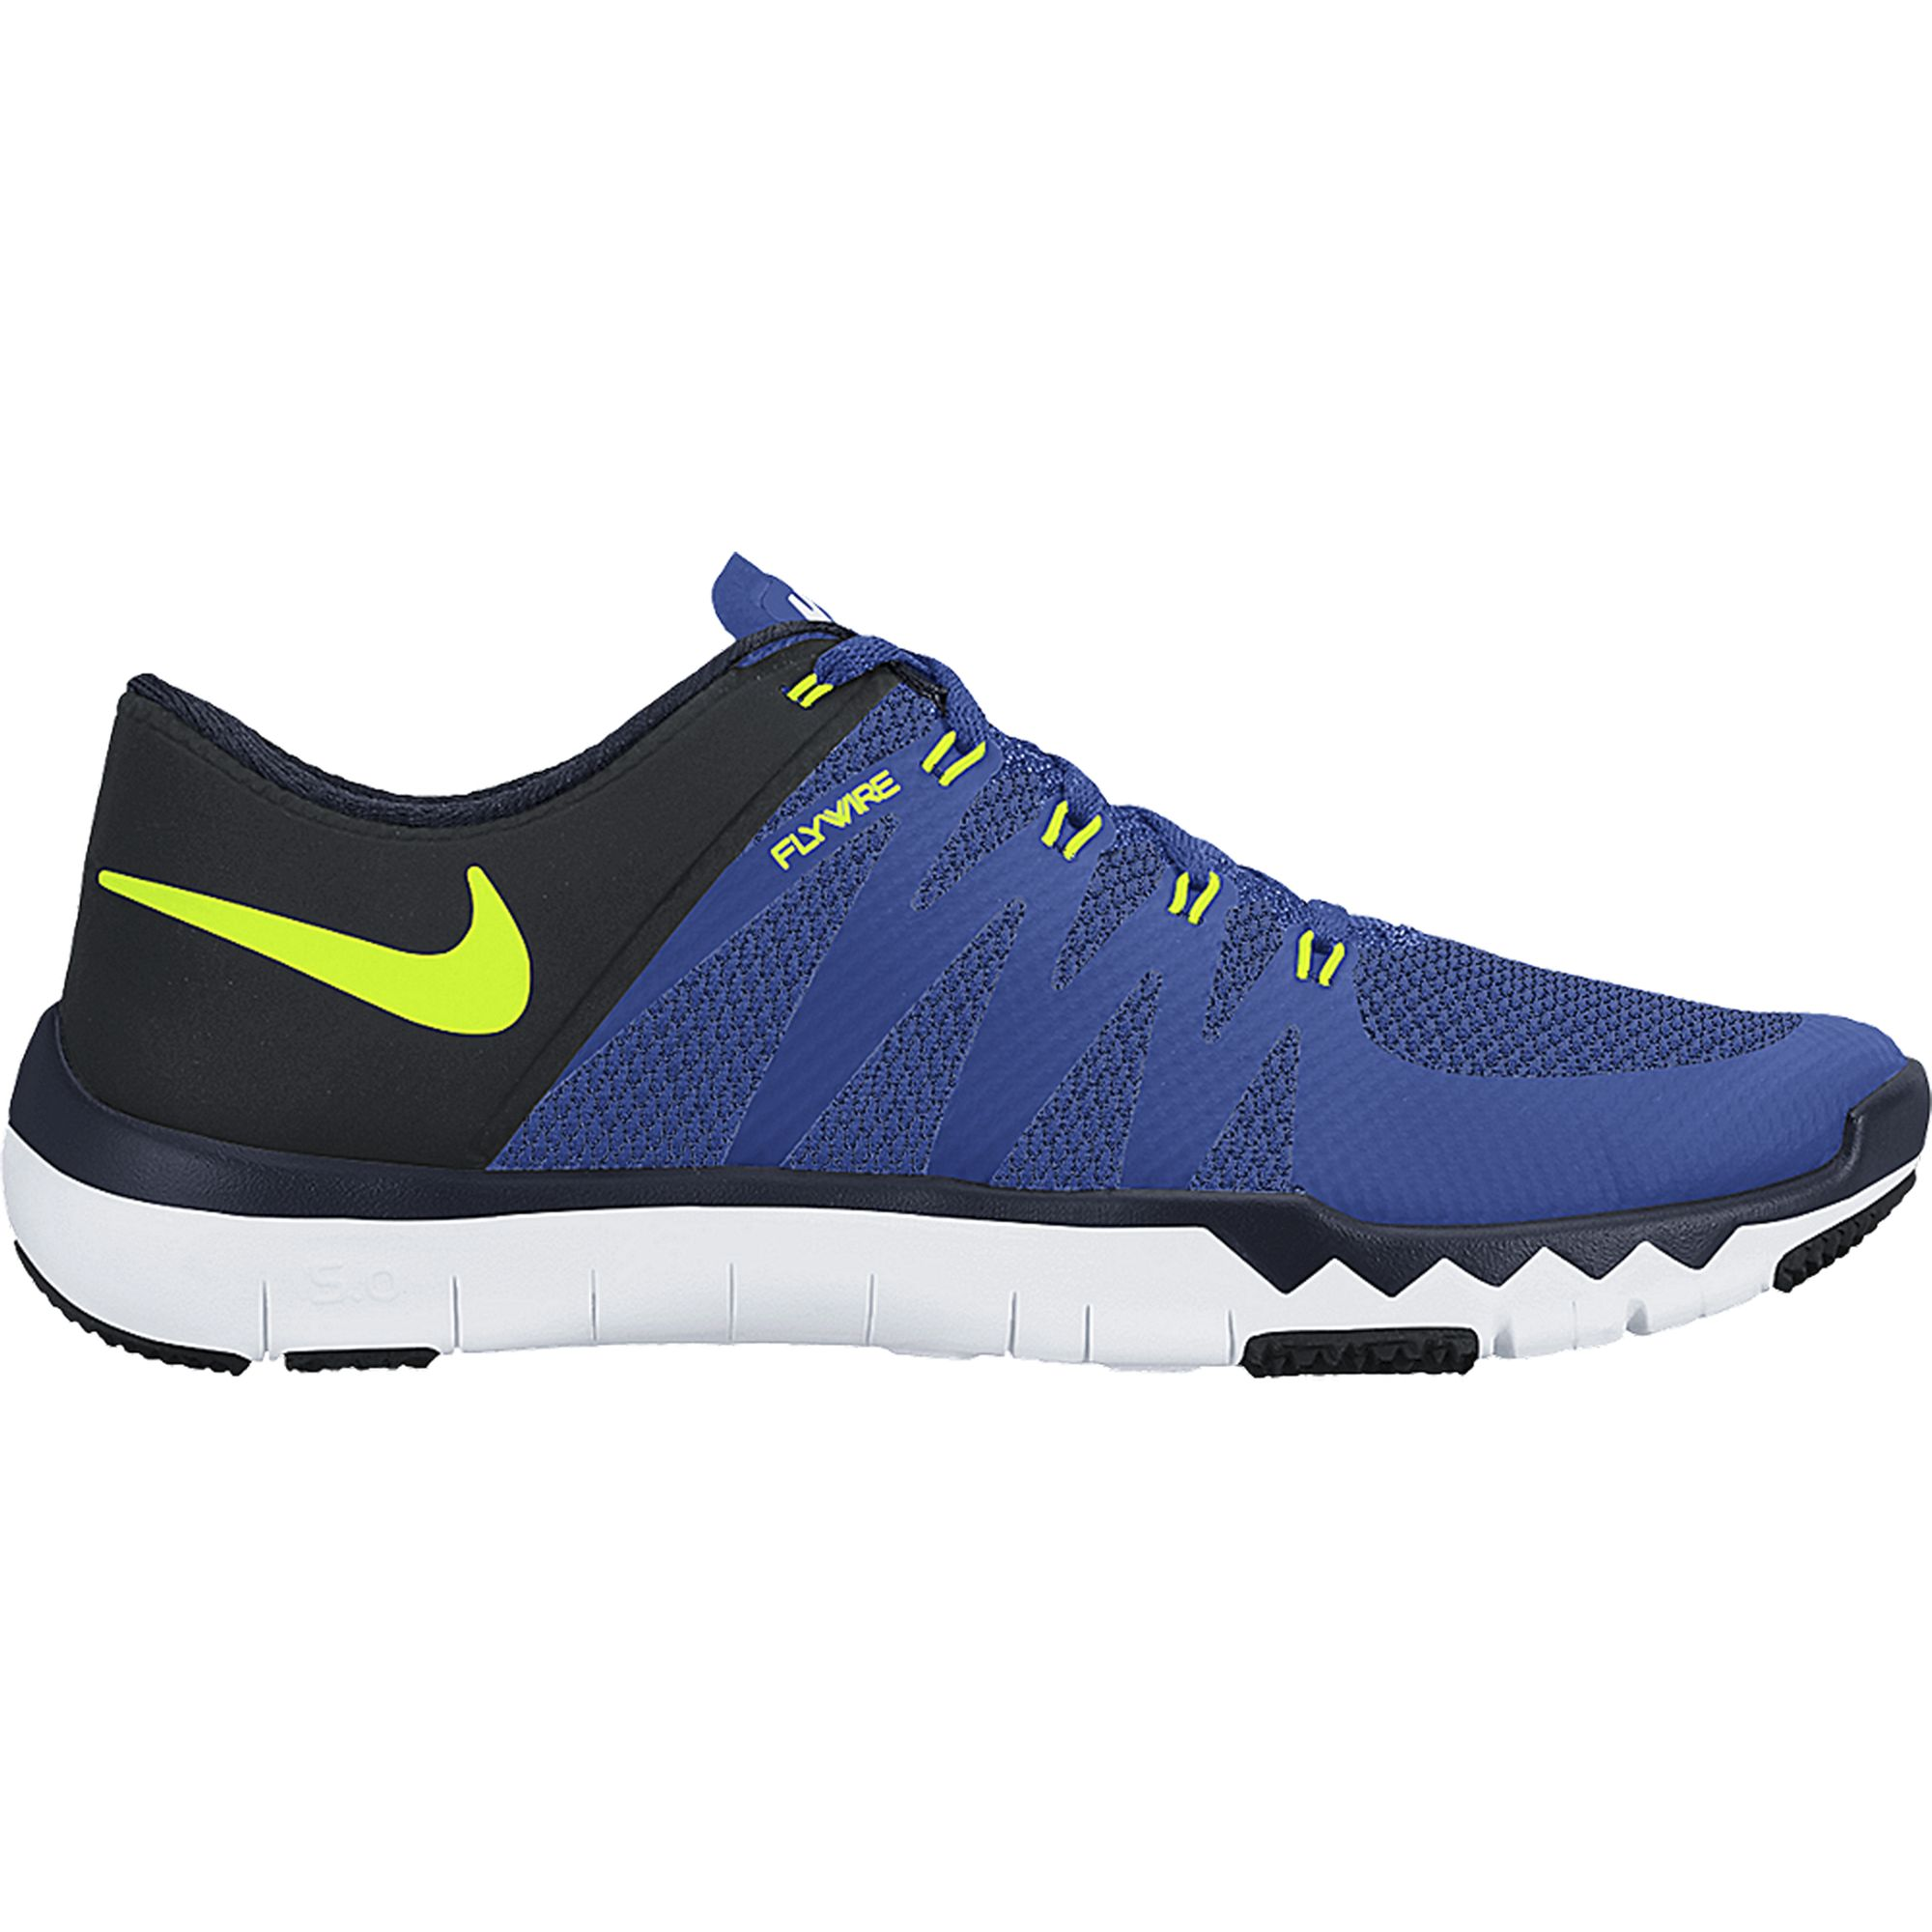 da827cf9f5caf Men s Nike Free Trainer 5.0 V6 Training Shoe - Sieverts Sporting Goods